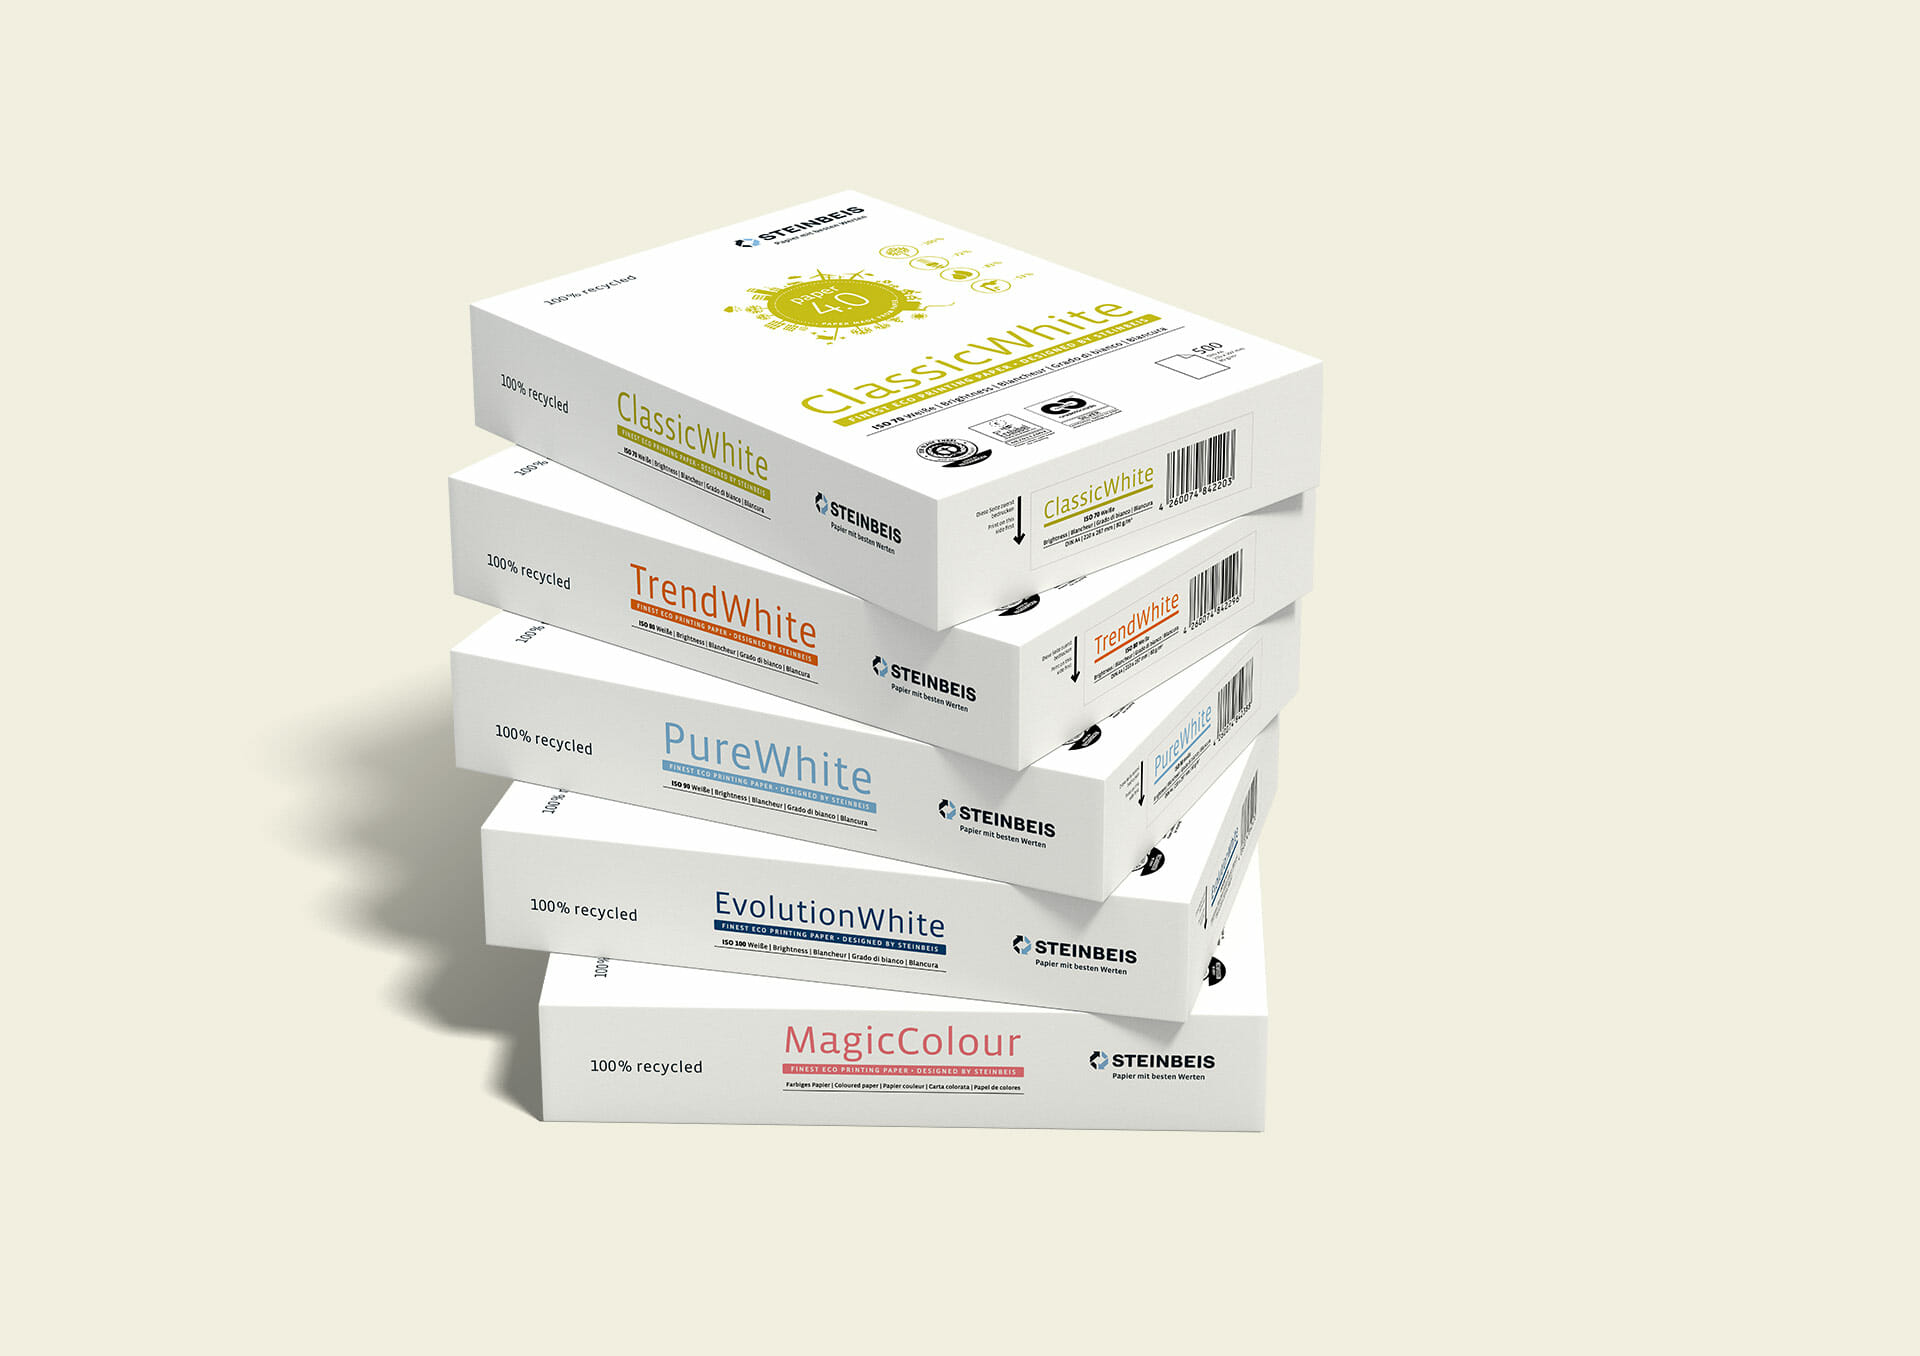 Steinbeis Papier Packaging Redesign 2015 Stapel